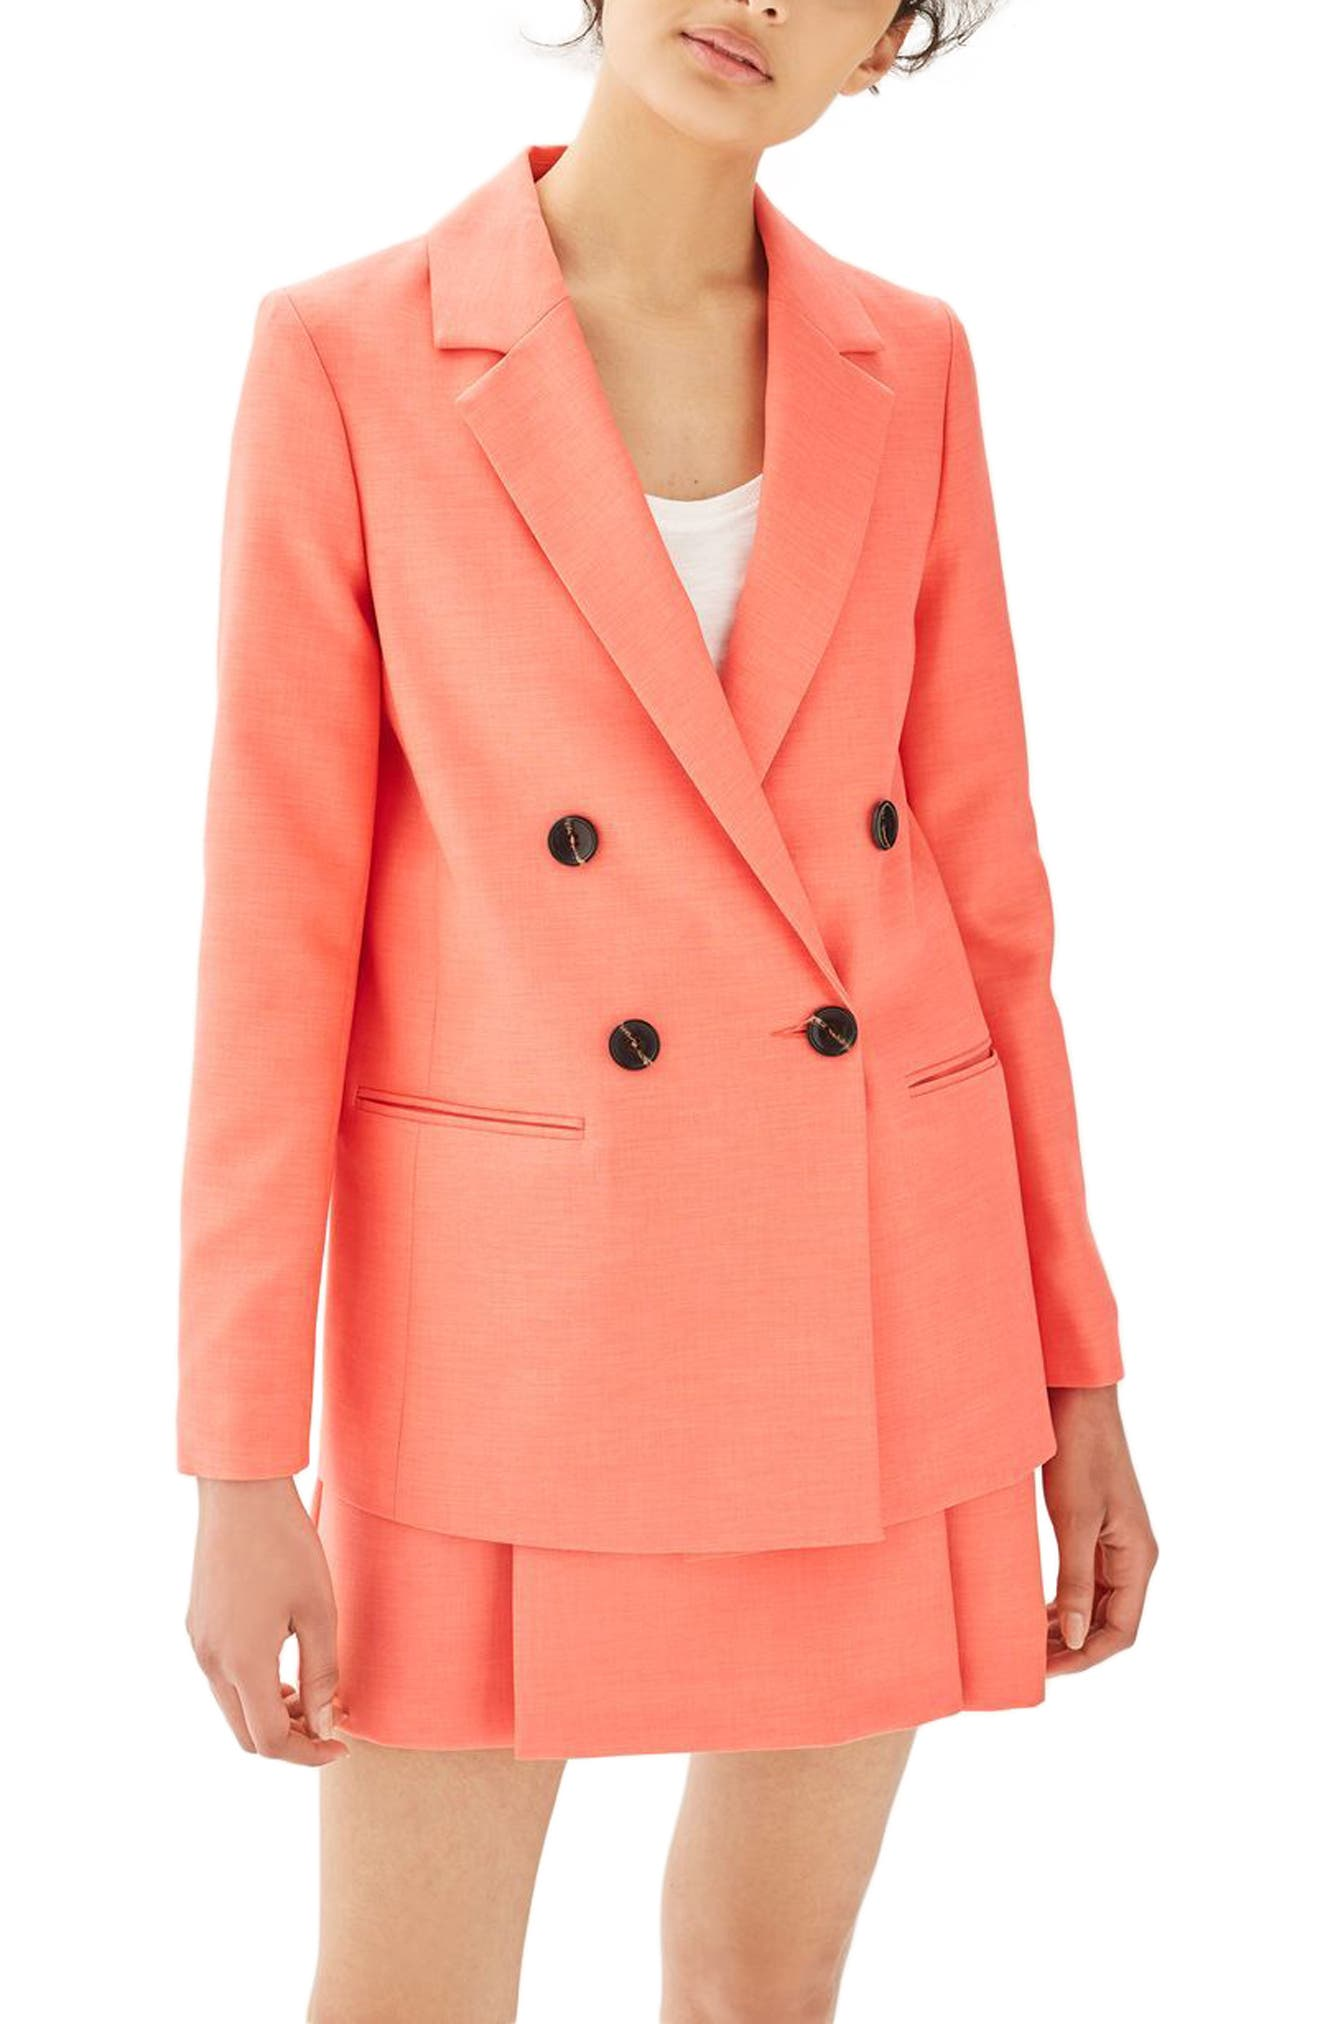 Alternate Image 1 Selected - Topshop Ella Double Breasted Suit Jacket